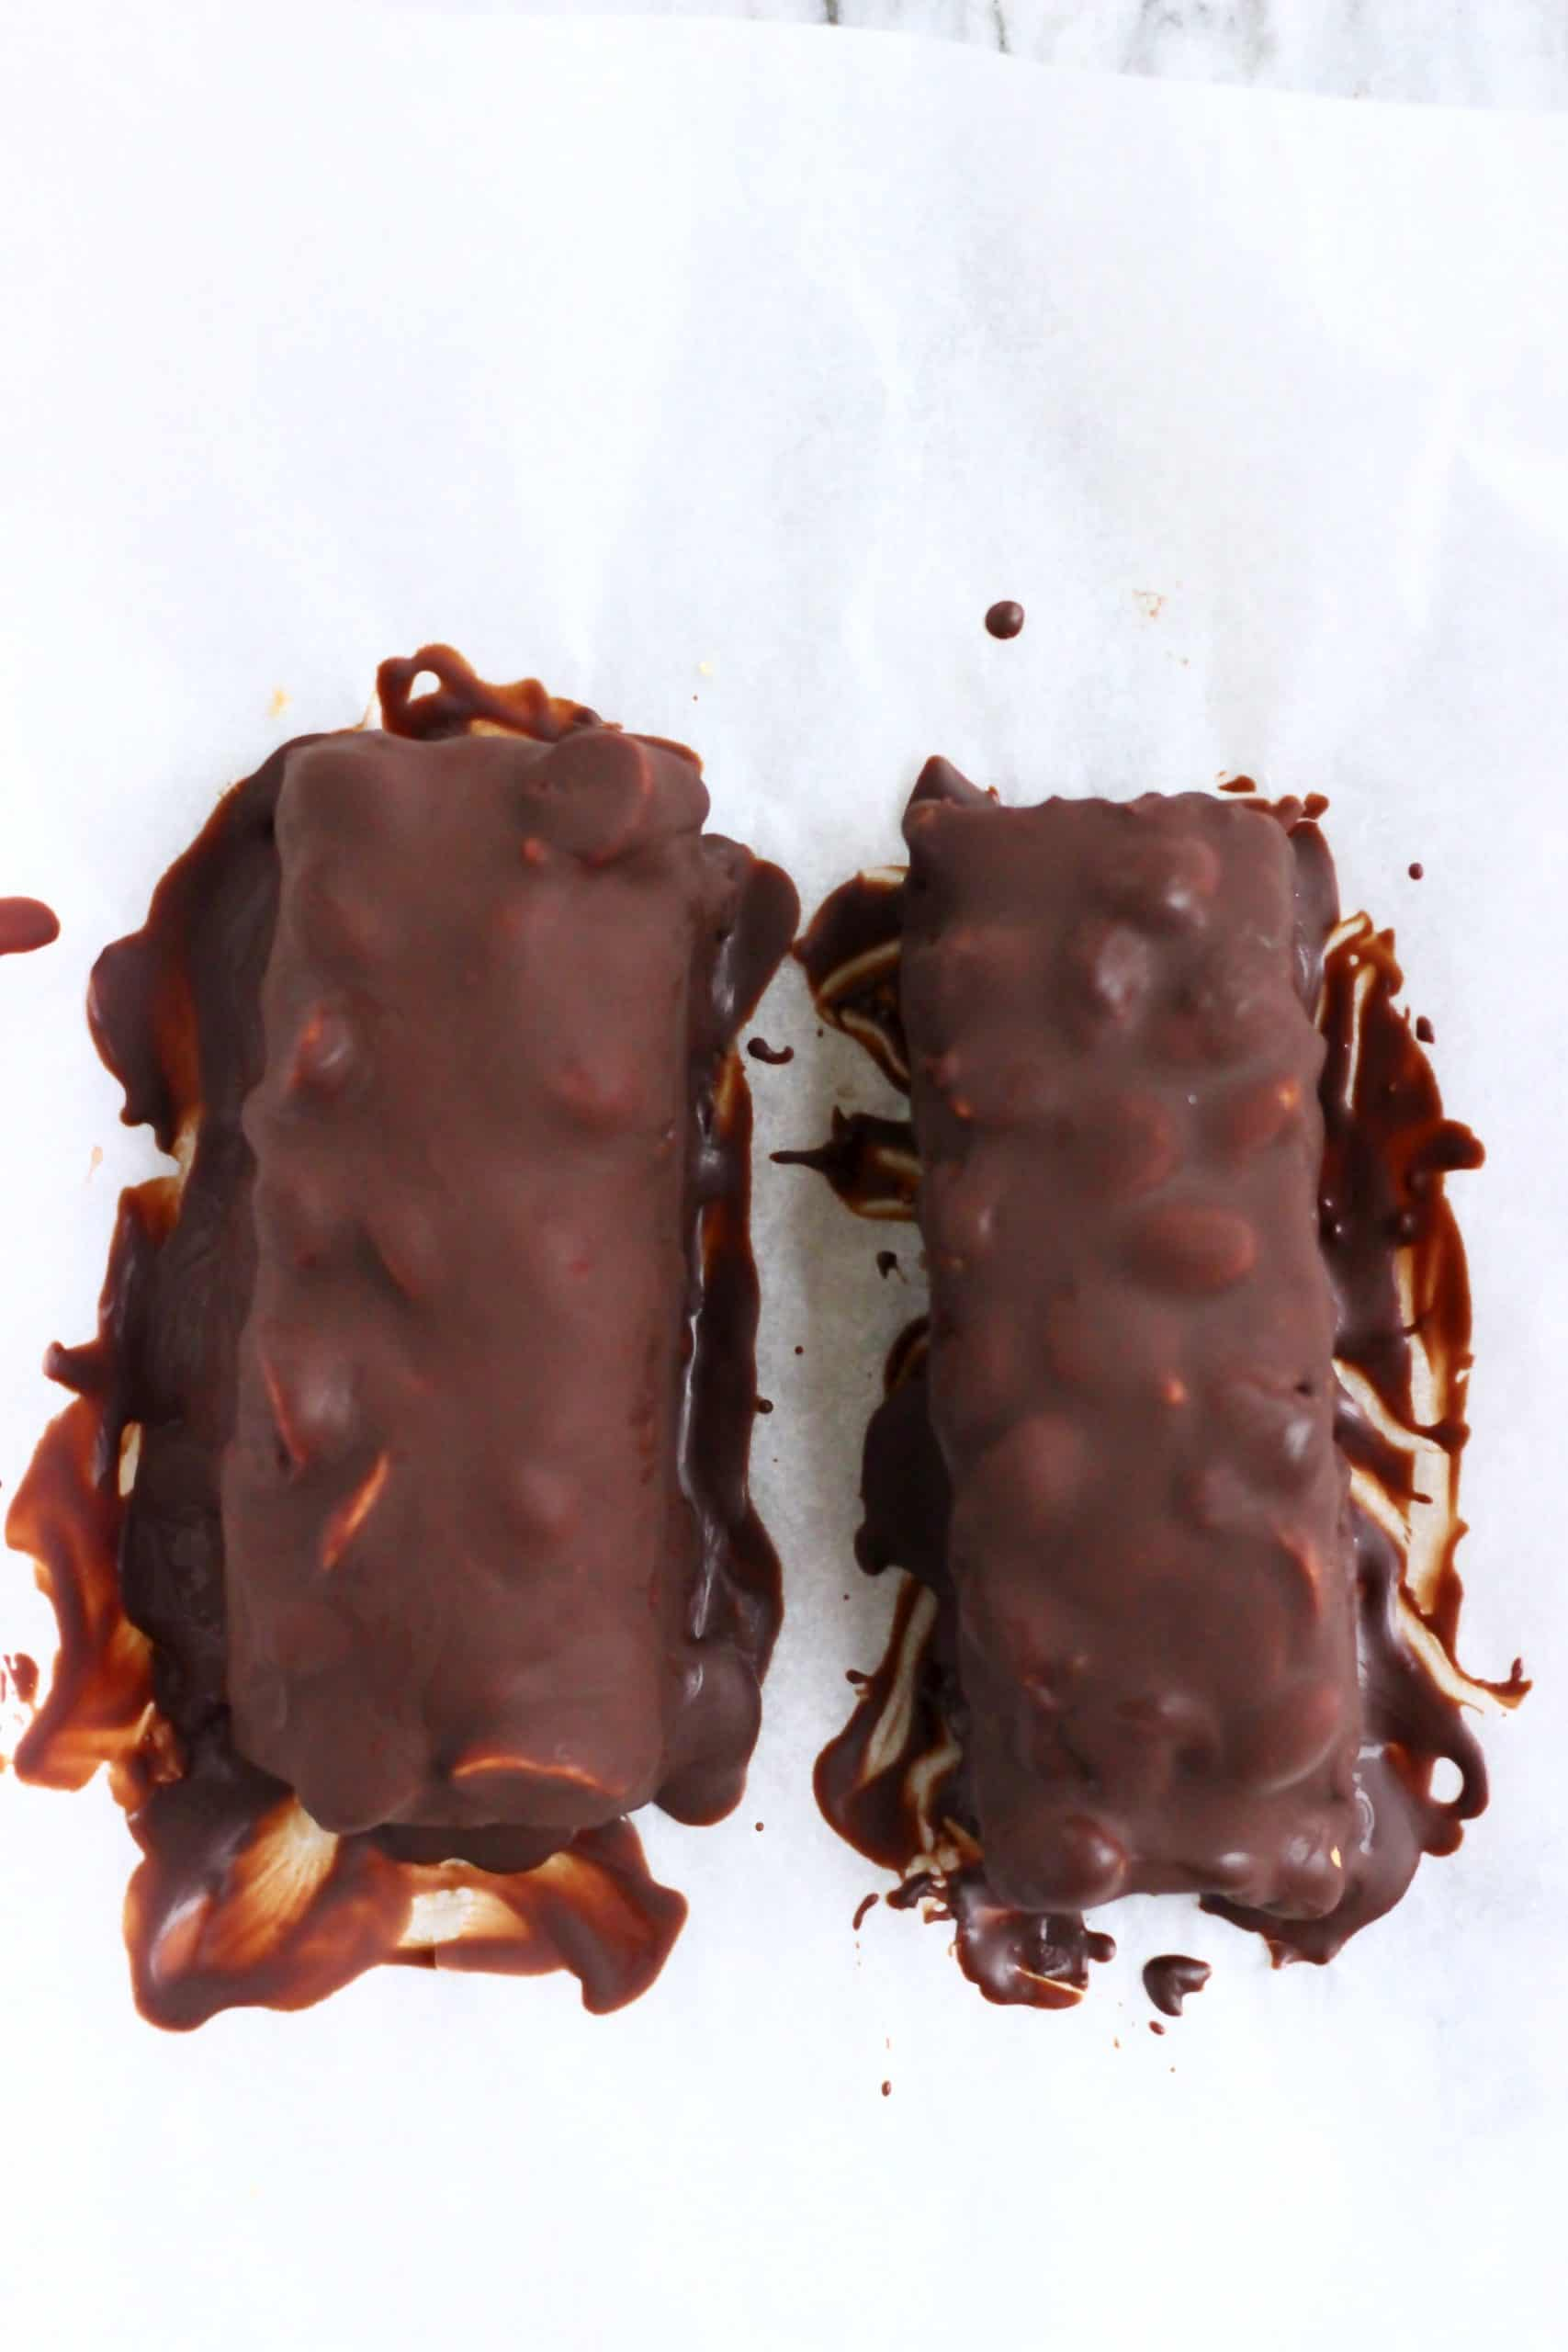 Two vegan snickers bars on a sheet of white baking paper